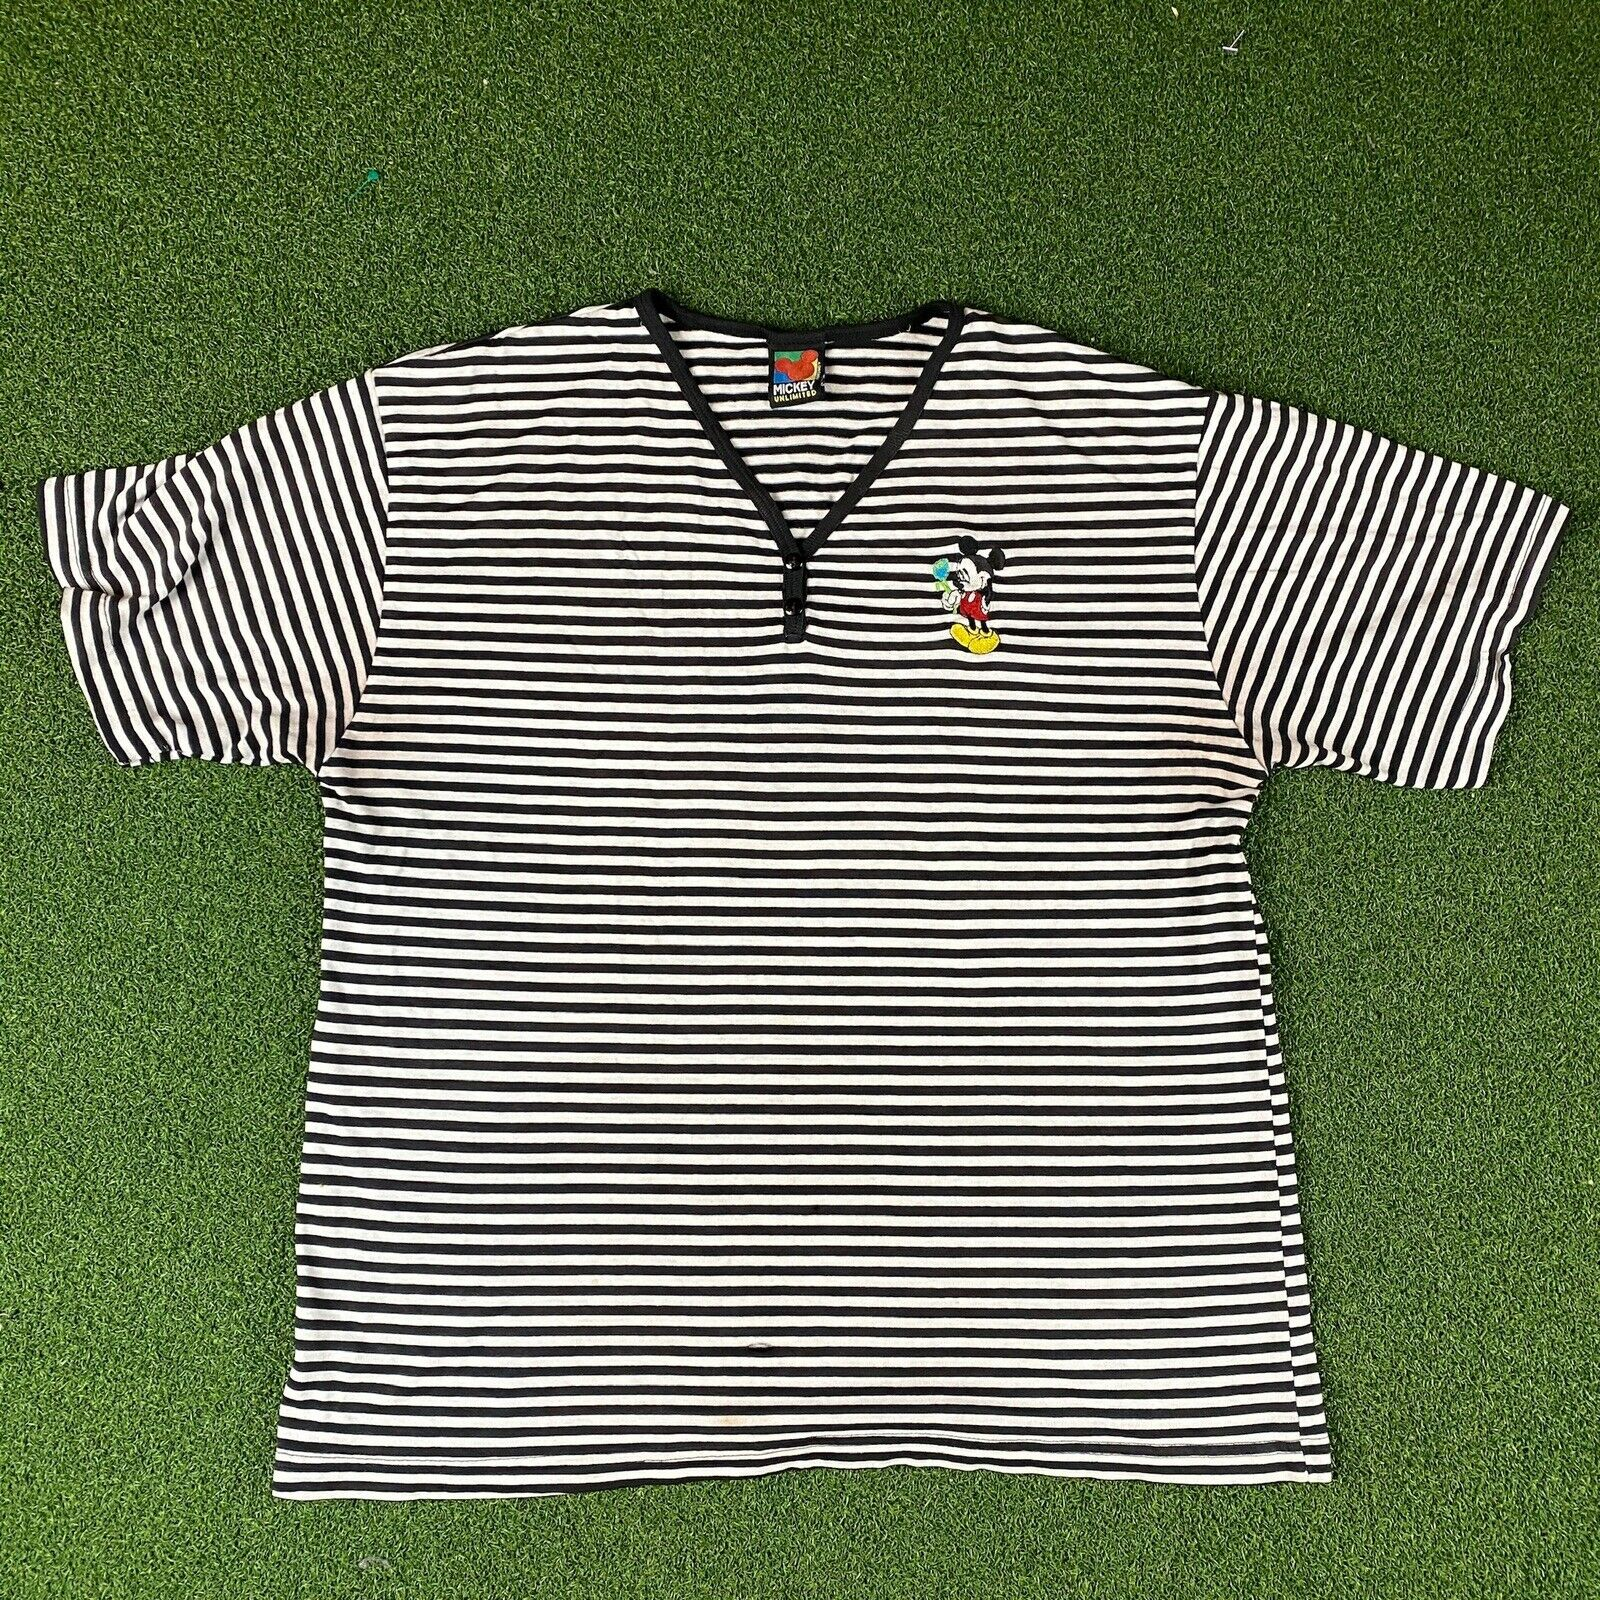 90s Disney Mickey Unlimited Black White Striped Shirt Embroidered Vtg Size Lg